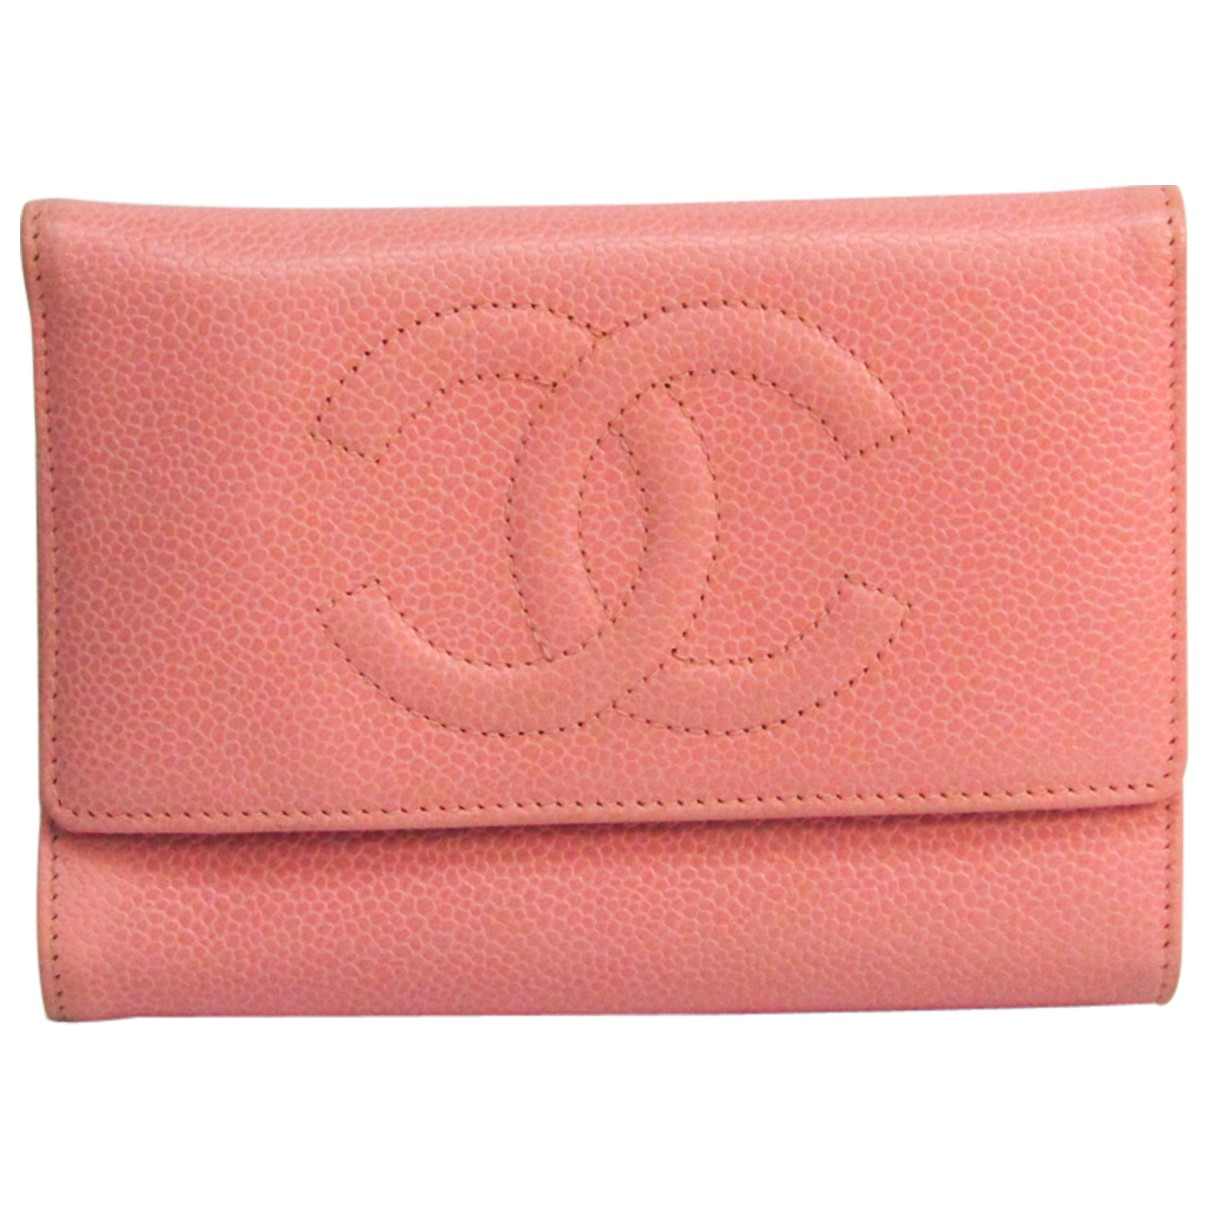 Chanel N Pink Leather wallet for Women N